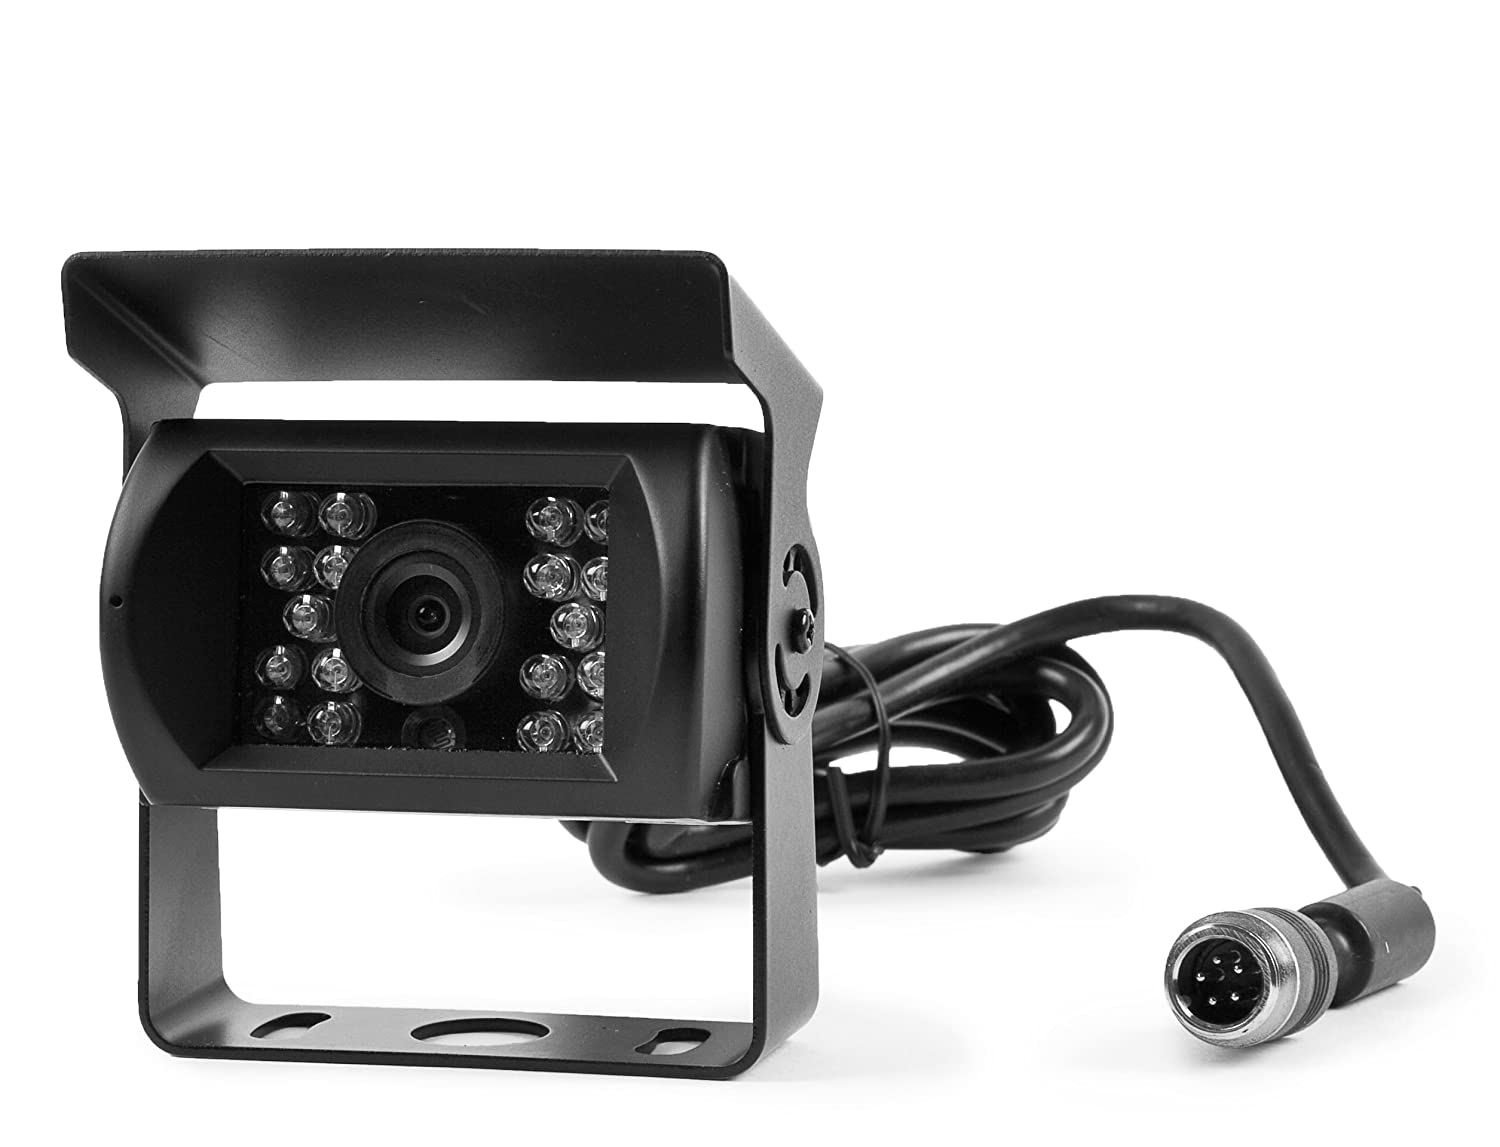 Rear View 130° CCD Back Up Camera with 18 Built in Infra-reds for Rv's, Trucks, & Trailers - Built-in Microphone to Hear Surroundings